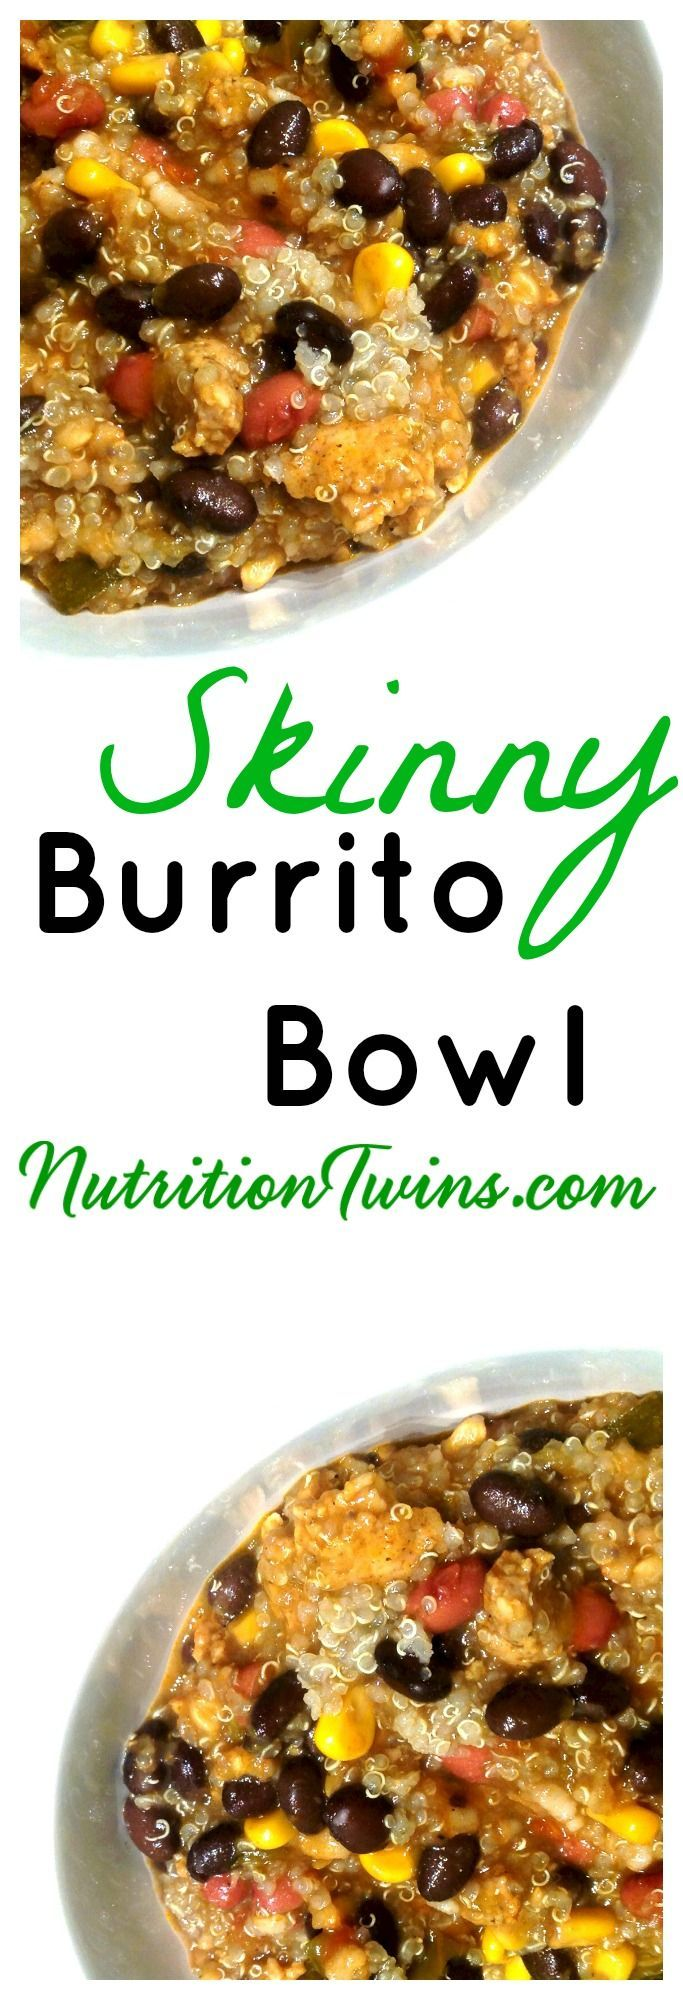 #wwwnutritiontwinscom #newsletter #nutrition #waistline #calories #burrito #fitness #recipes #mexica...